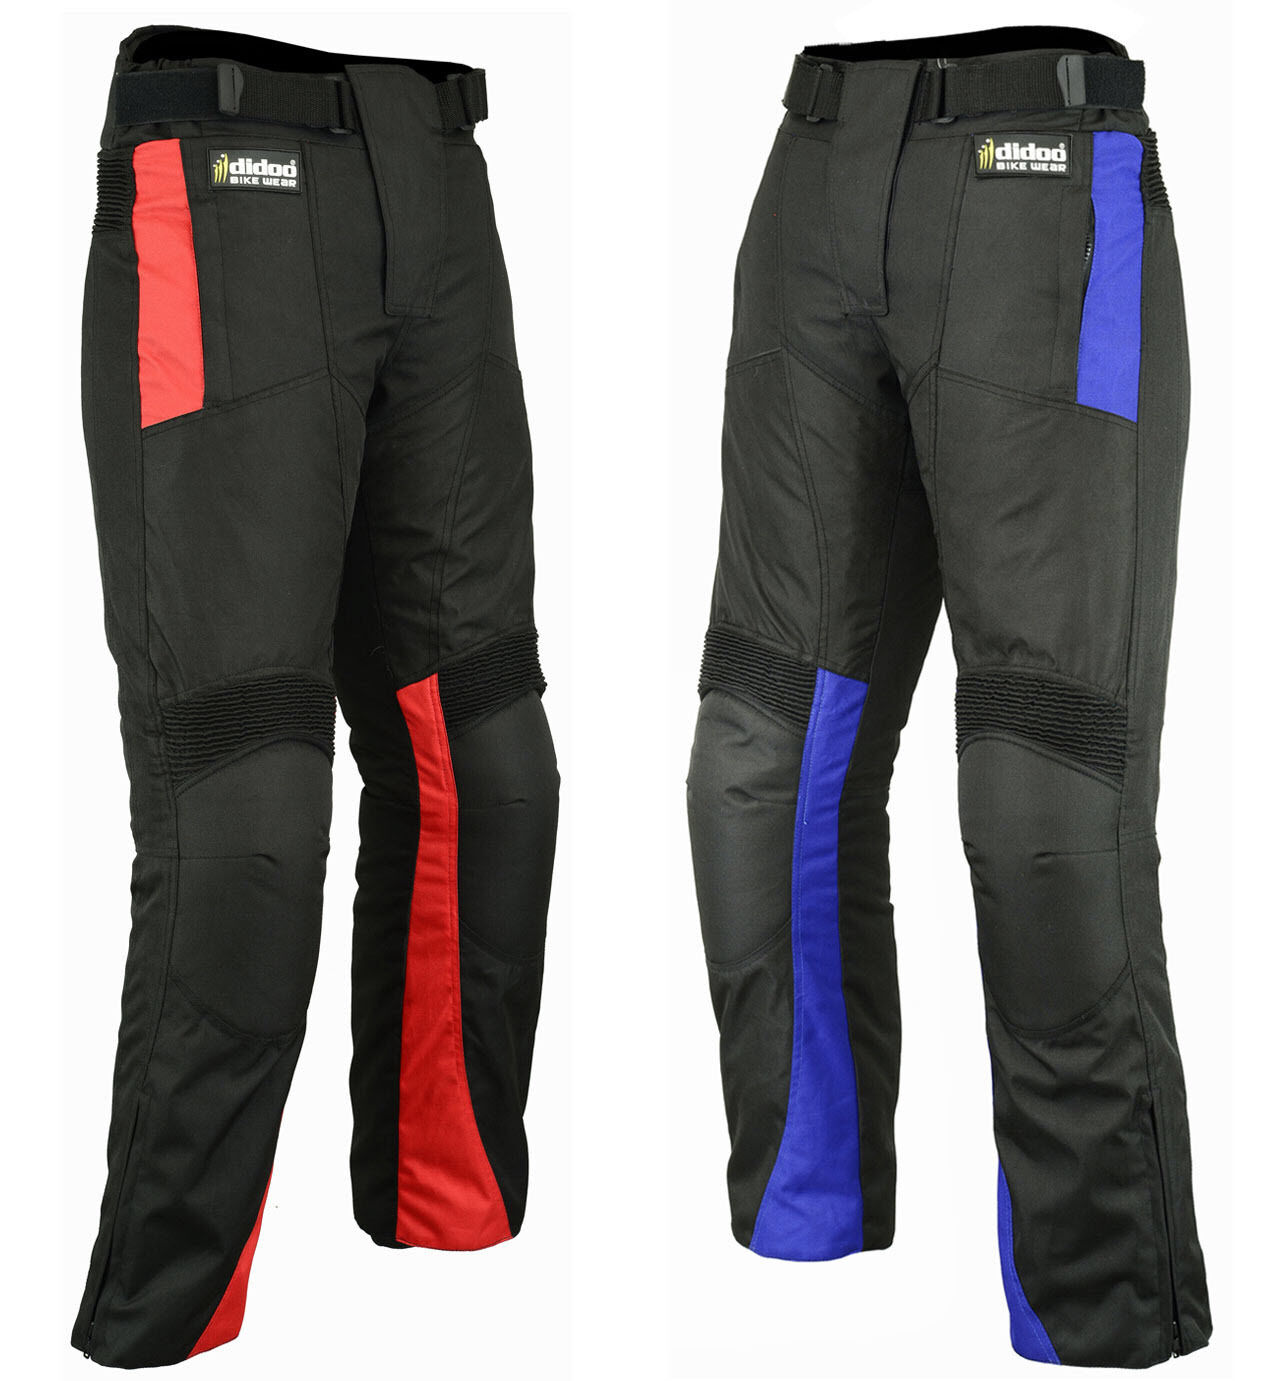 Textile Motorcycle Trousers Reviews